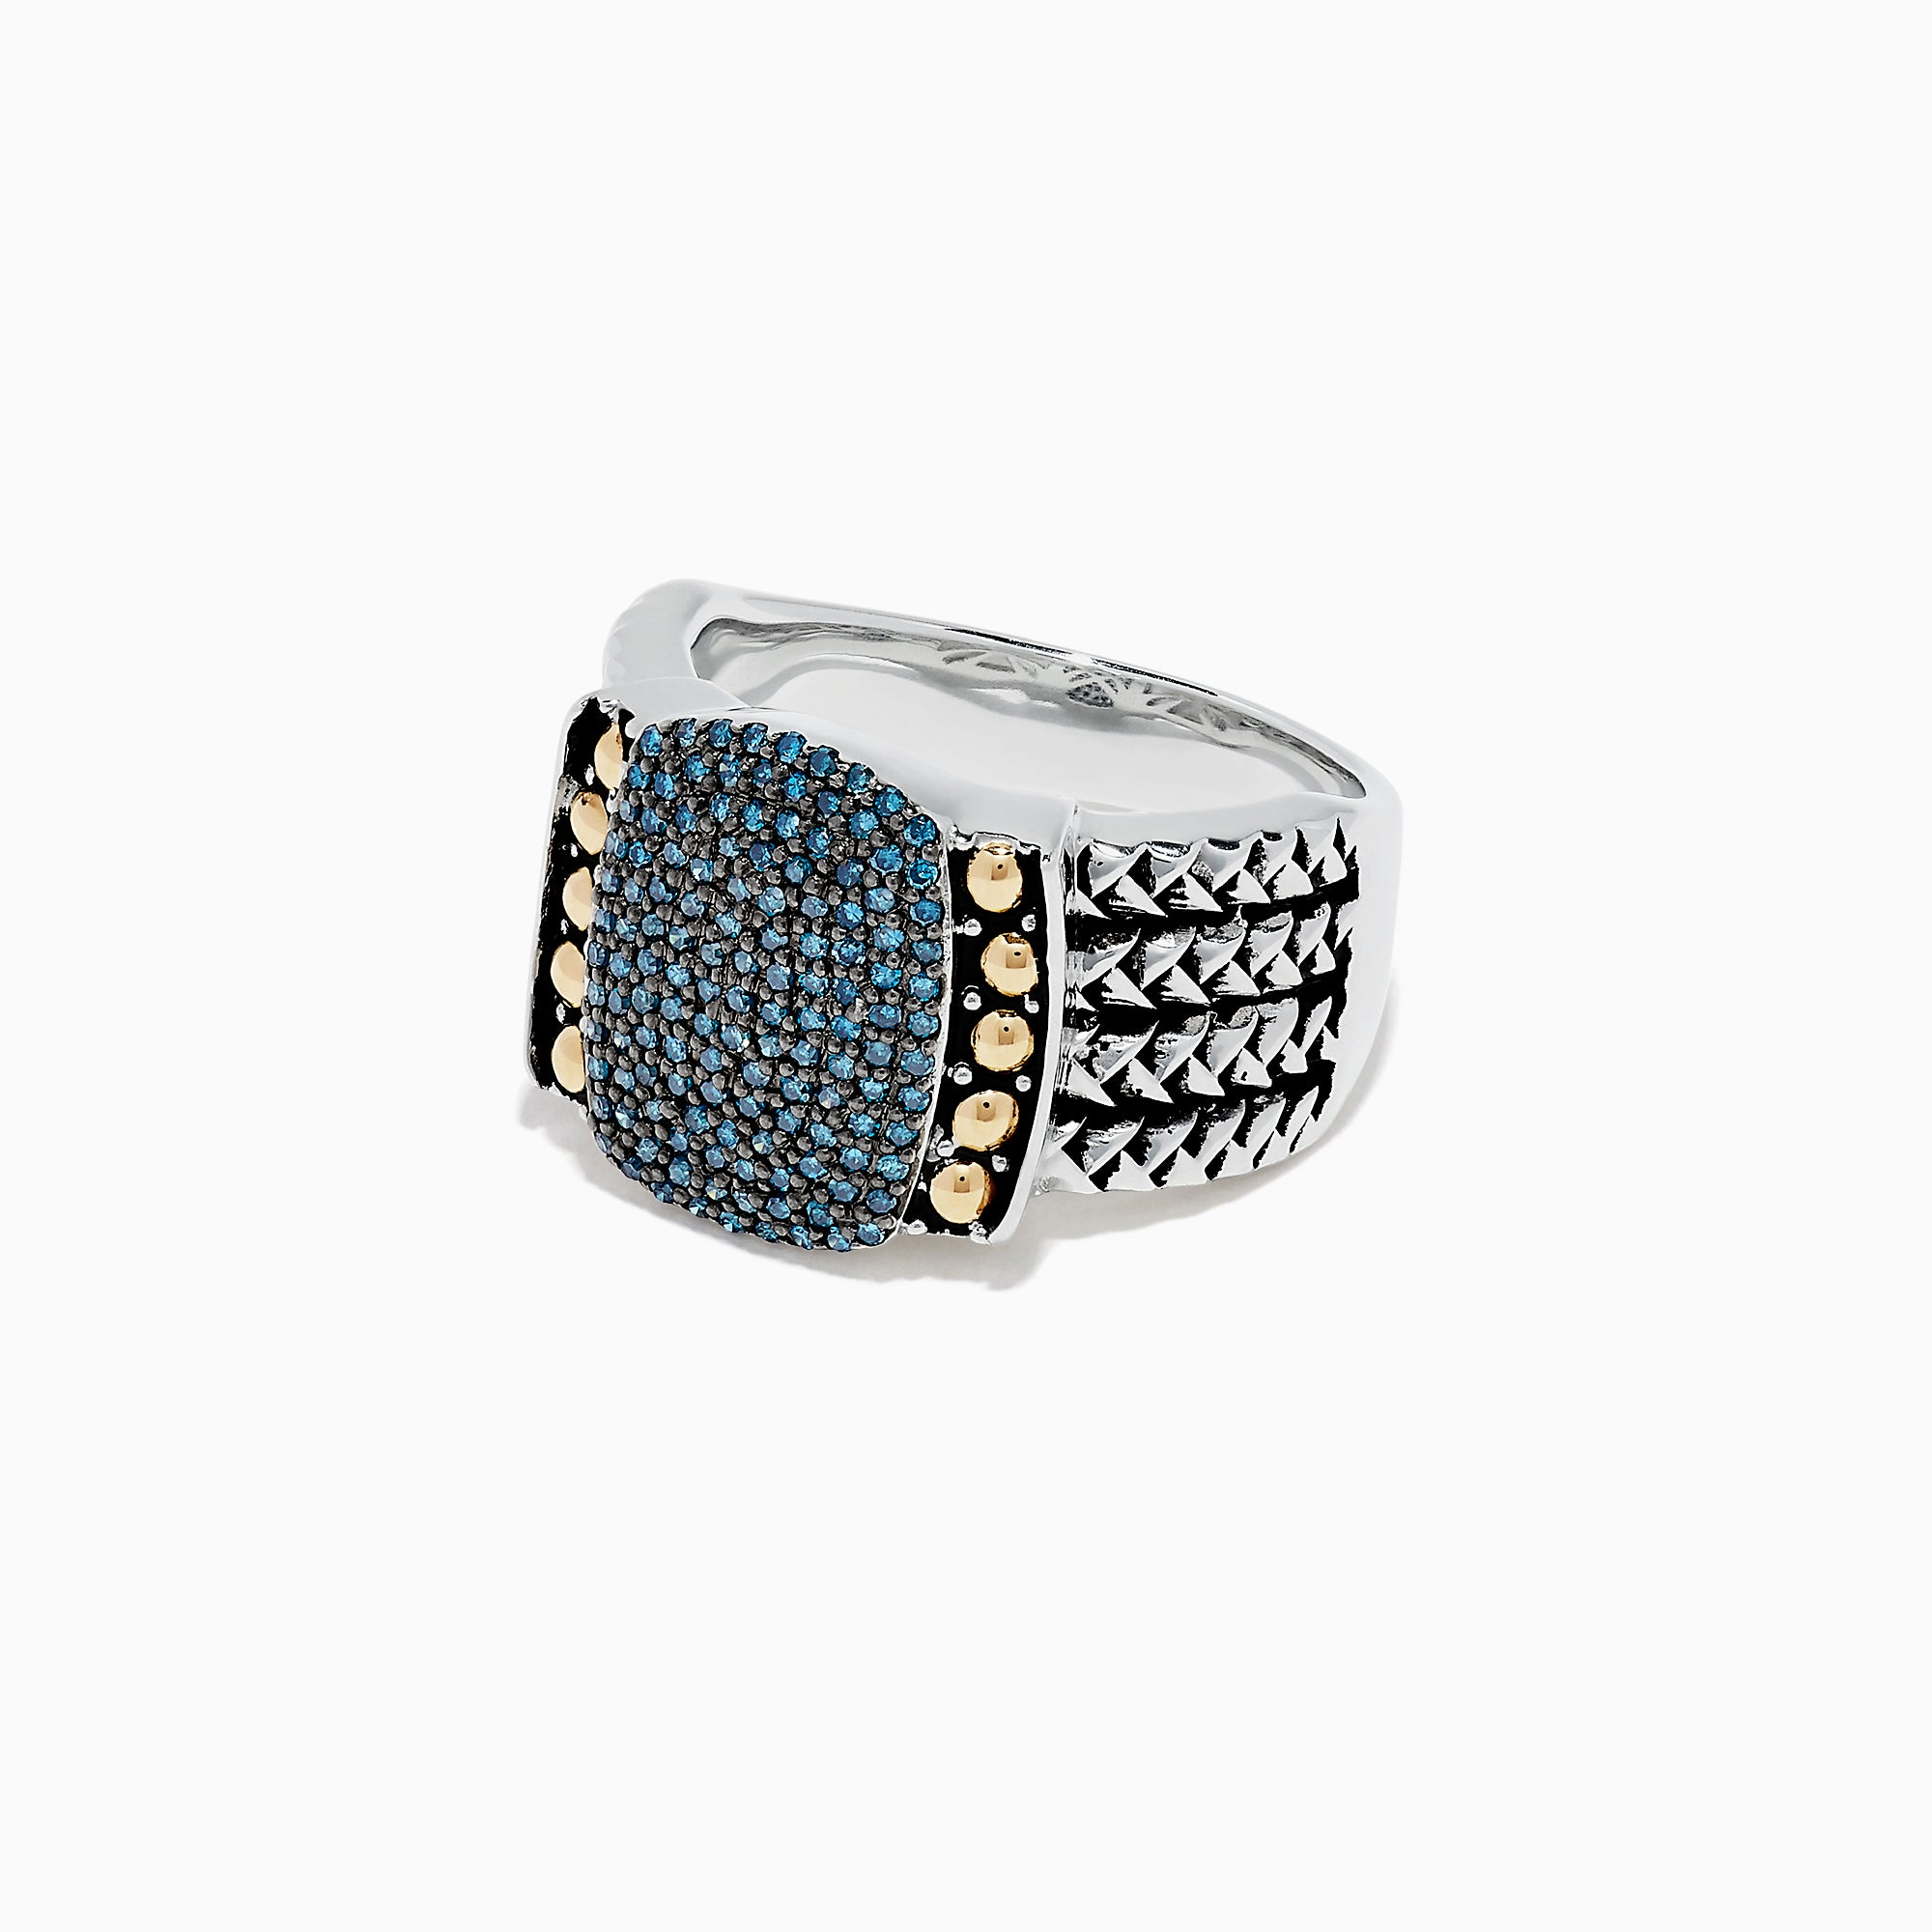 Effy 925 Sterling Silver and 18K Gold Blue Diamond Ring, 0.42 TCW